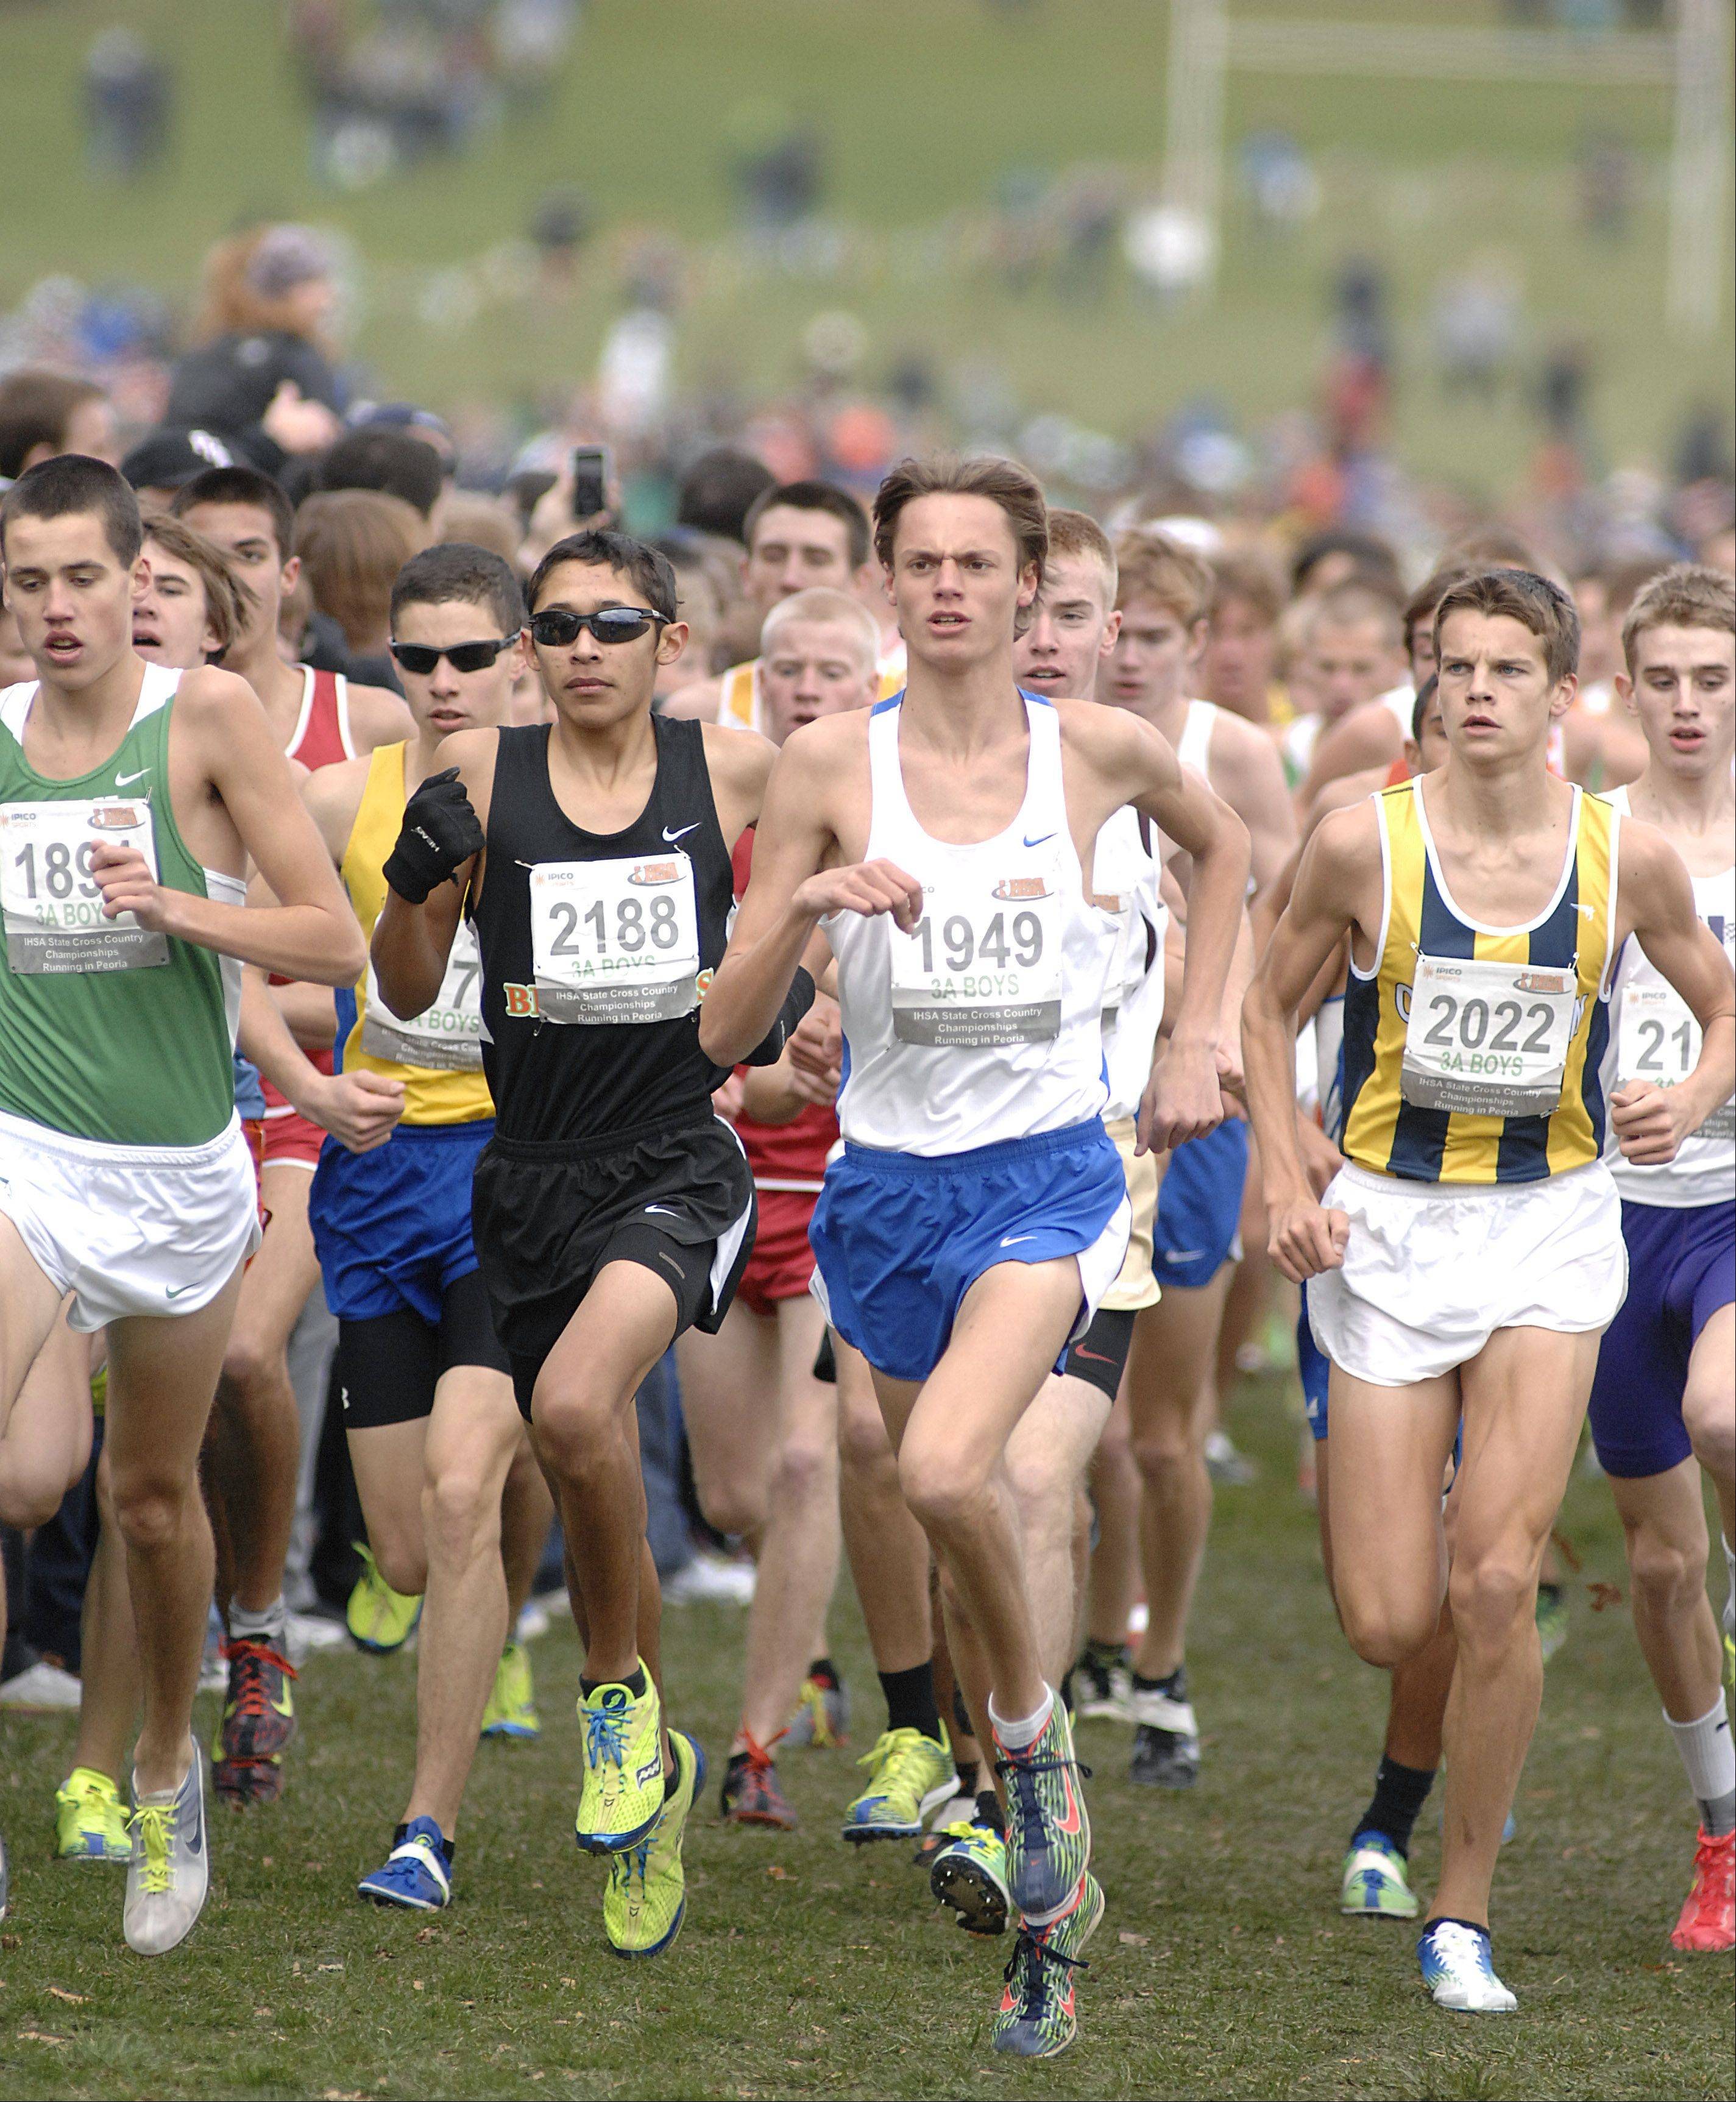 Laura Stoecker/lstoecker@dailyherald.com Lake Zurich's Alex Milner (1949) leads the pack in the state cross country 3A final in Peoria on Saturday, November 3.